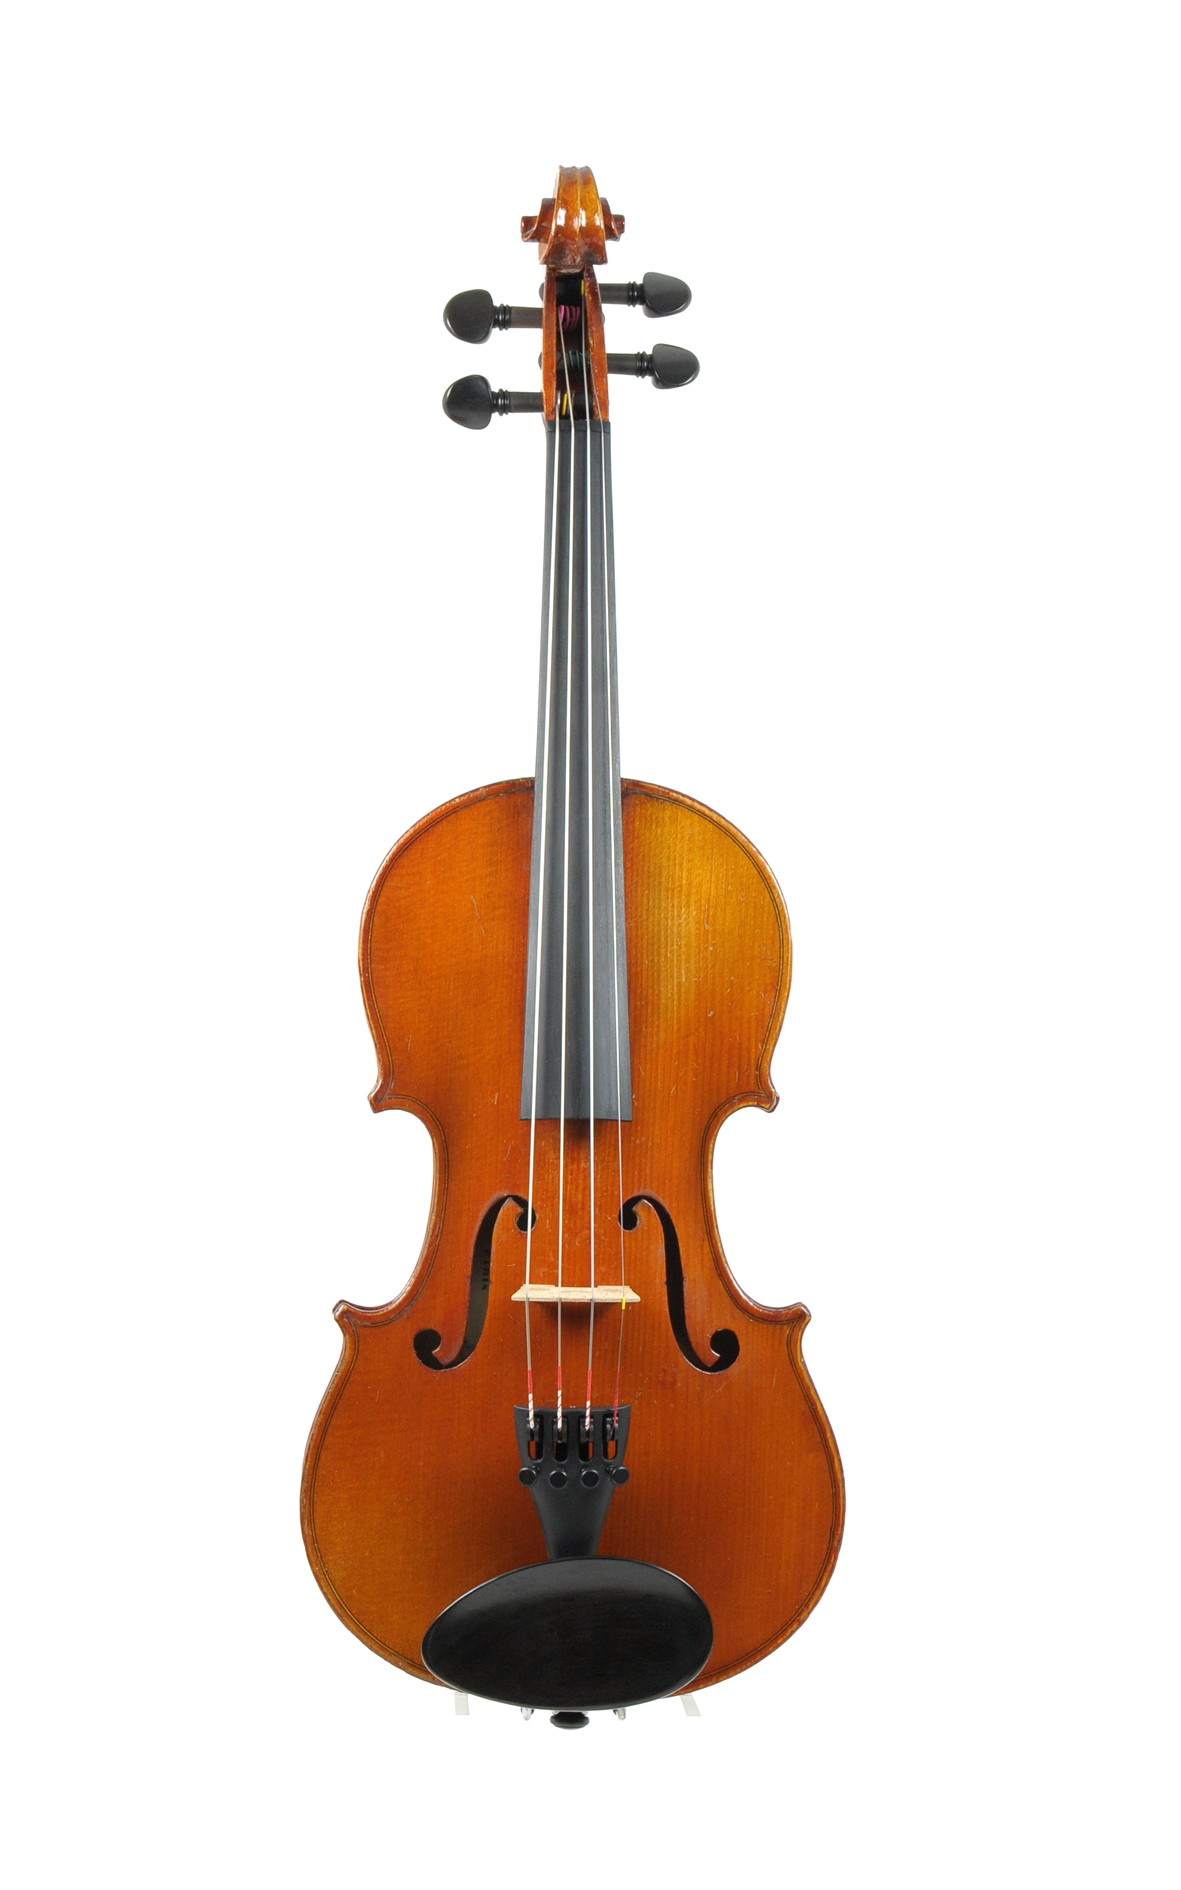 Thevenin luthier 1/2 violin Mirecourt approx. 1930 - top